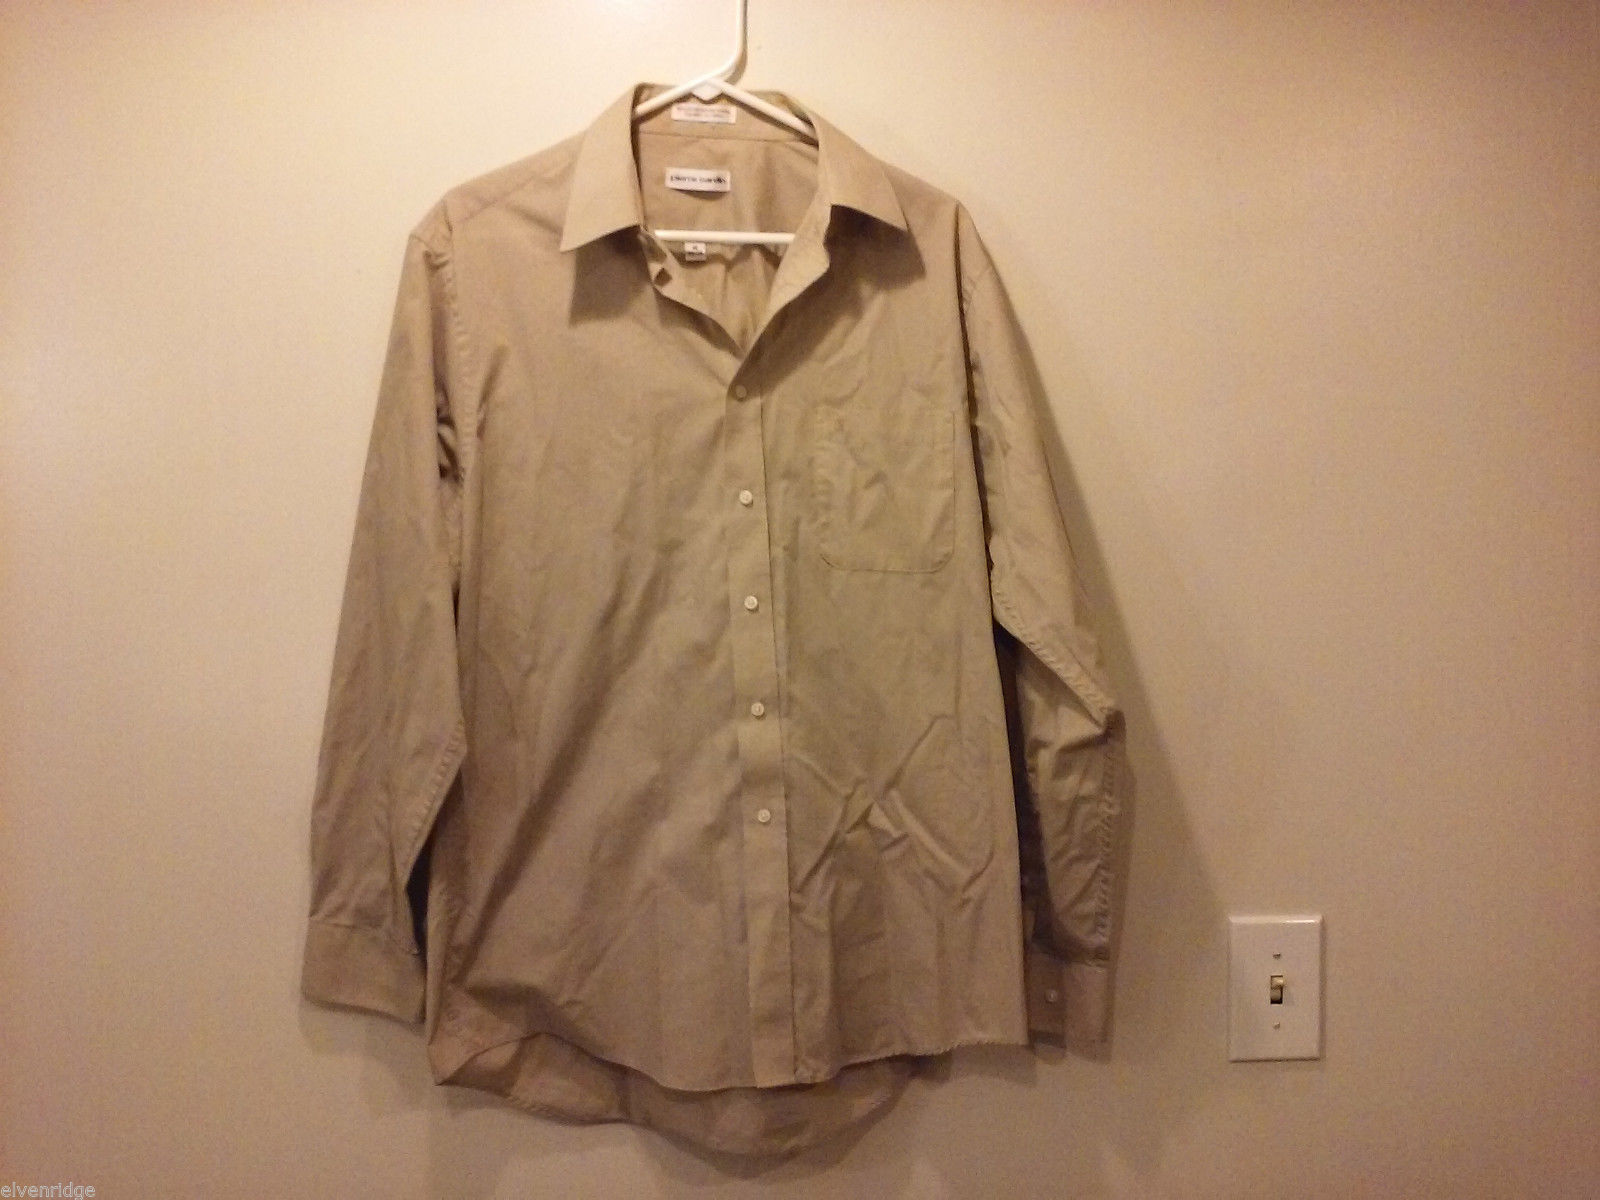 Pierre Cardin Men's Size 16 Shirt Career Work Business Button-Down Taupe Brown